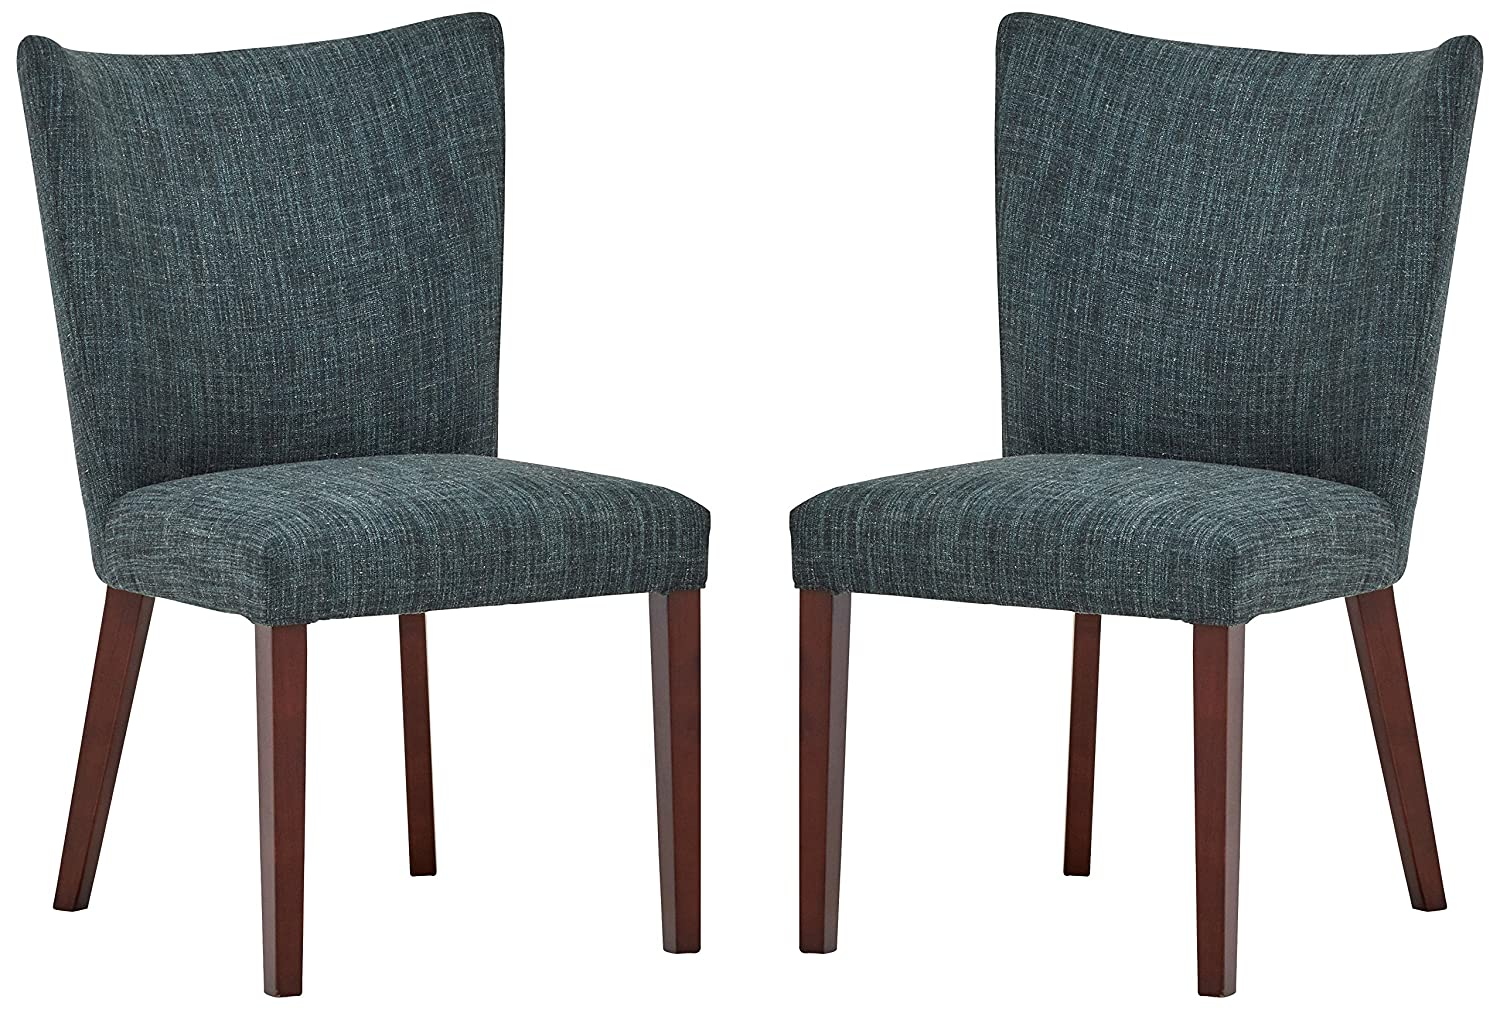 Amazon com rivet tina modern 2 pack curved back dining chairs 36h marine blue chairs